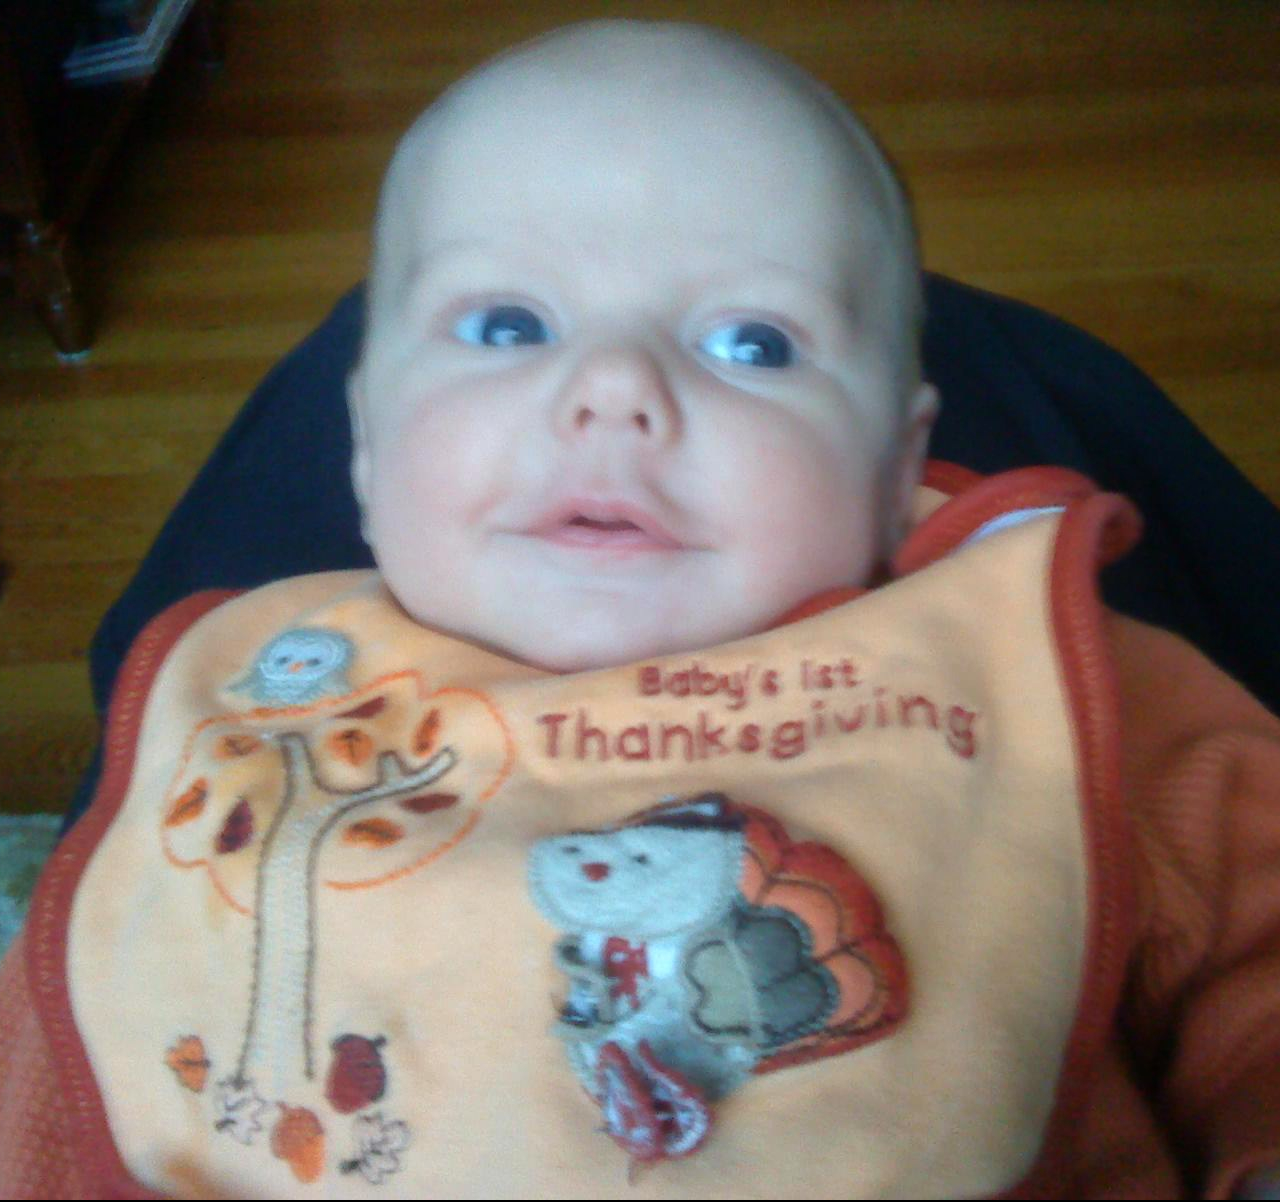 Six week old infant wearing baby's first thanksgiving bib with turkey